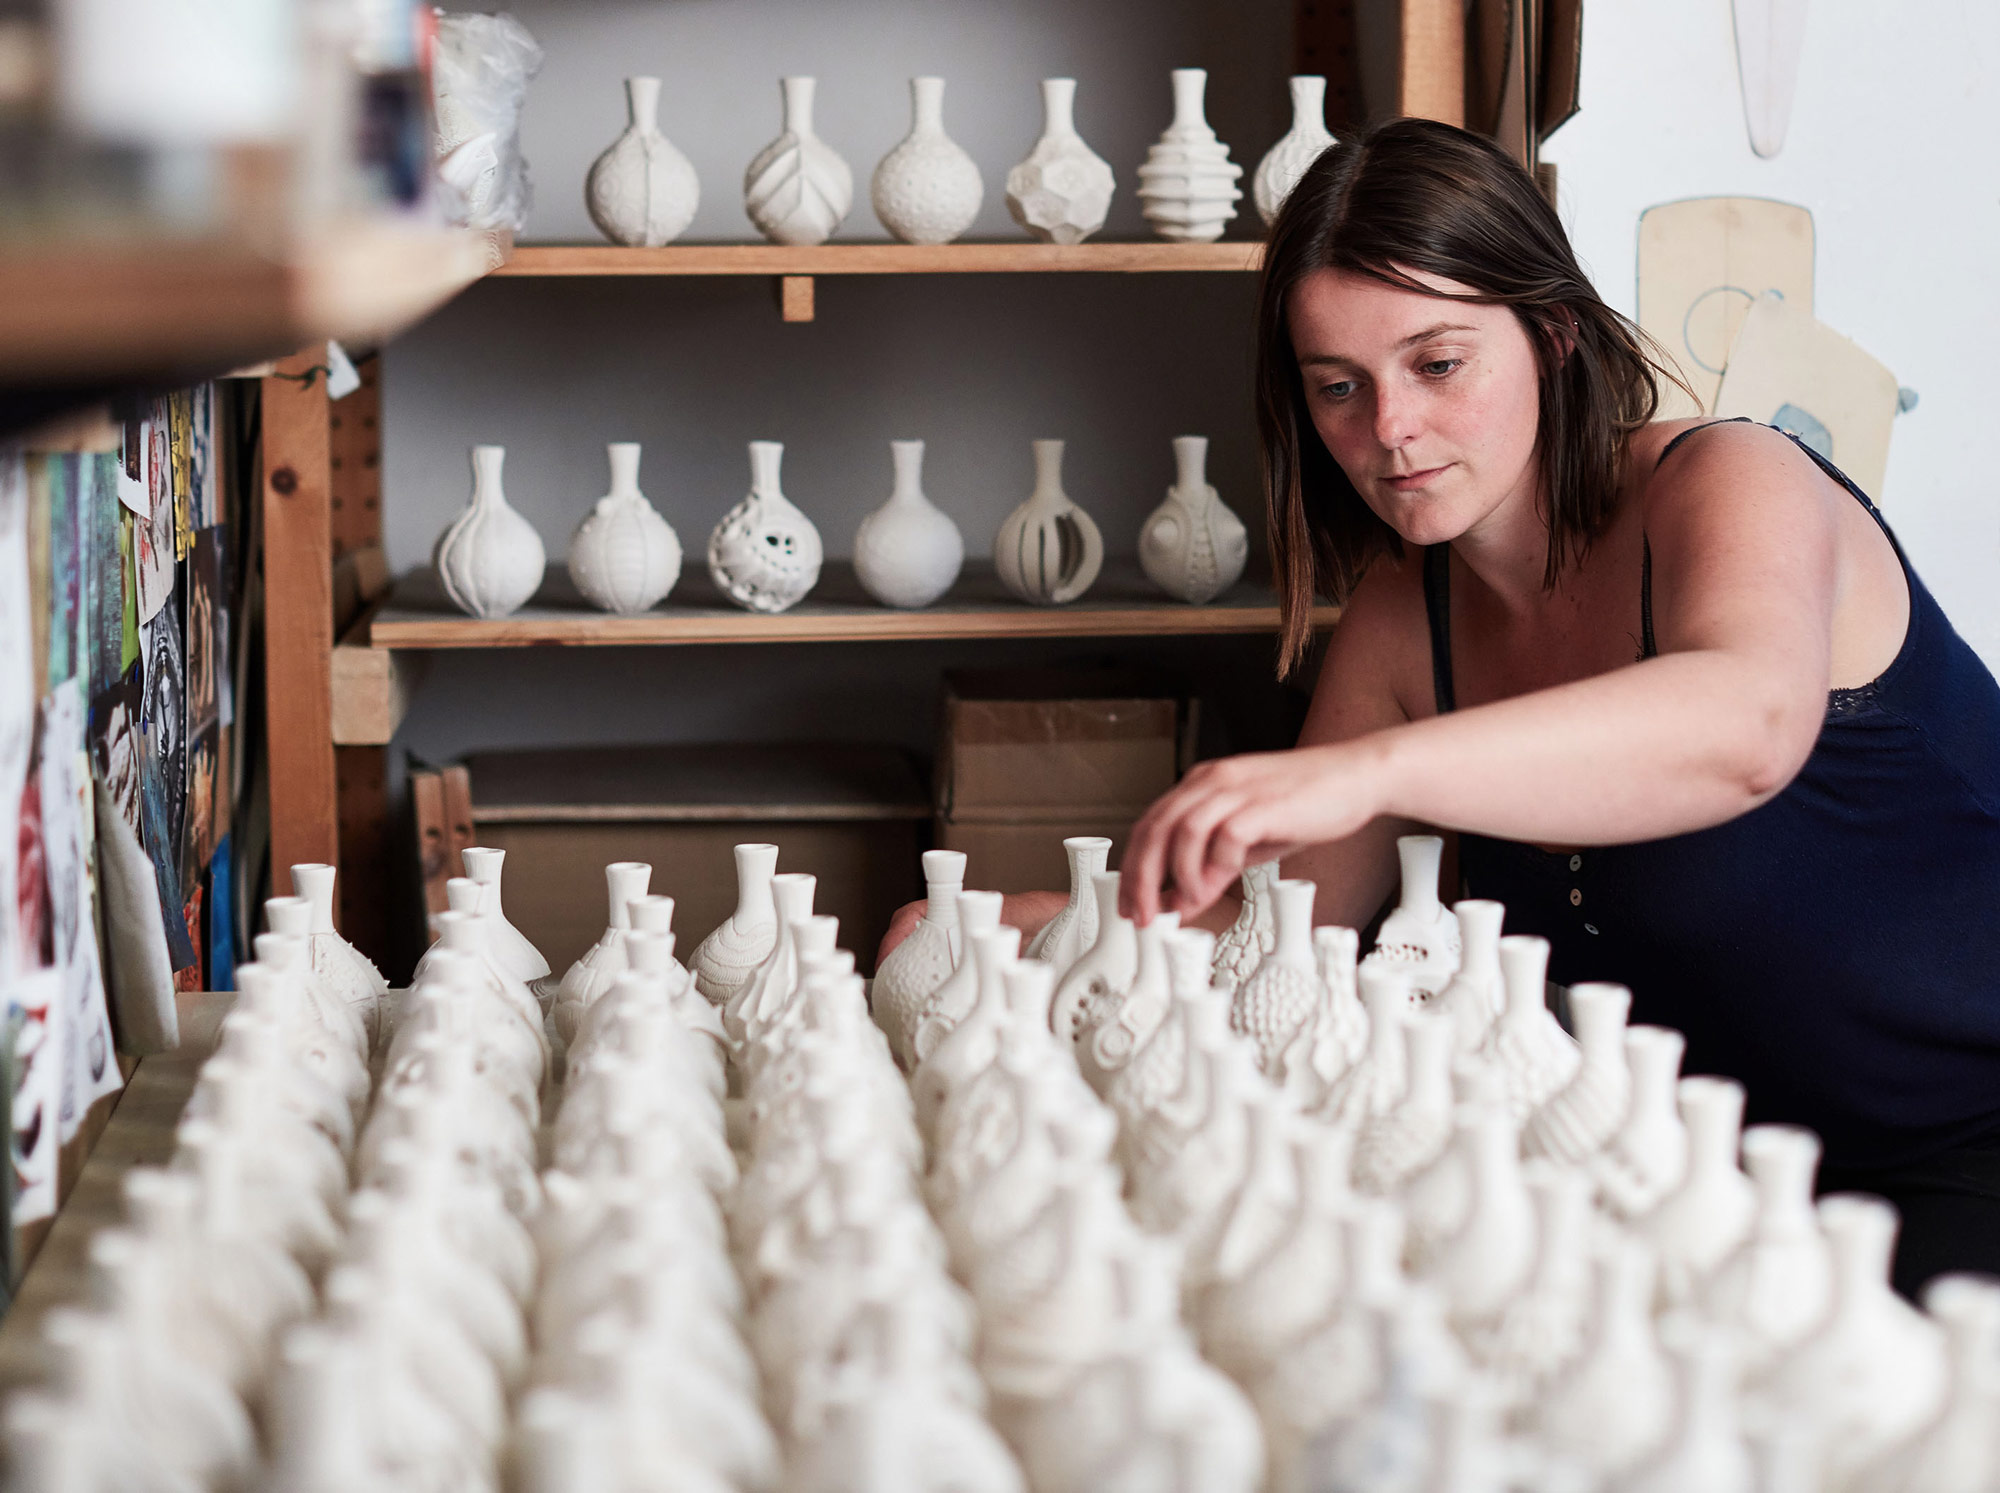 Ceramist Anna Whitehouse Created 100 Unique Clay Vessels in 100 Days Artes & contextos AnnaWhitehouse 03